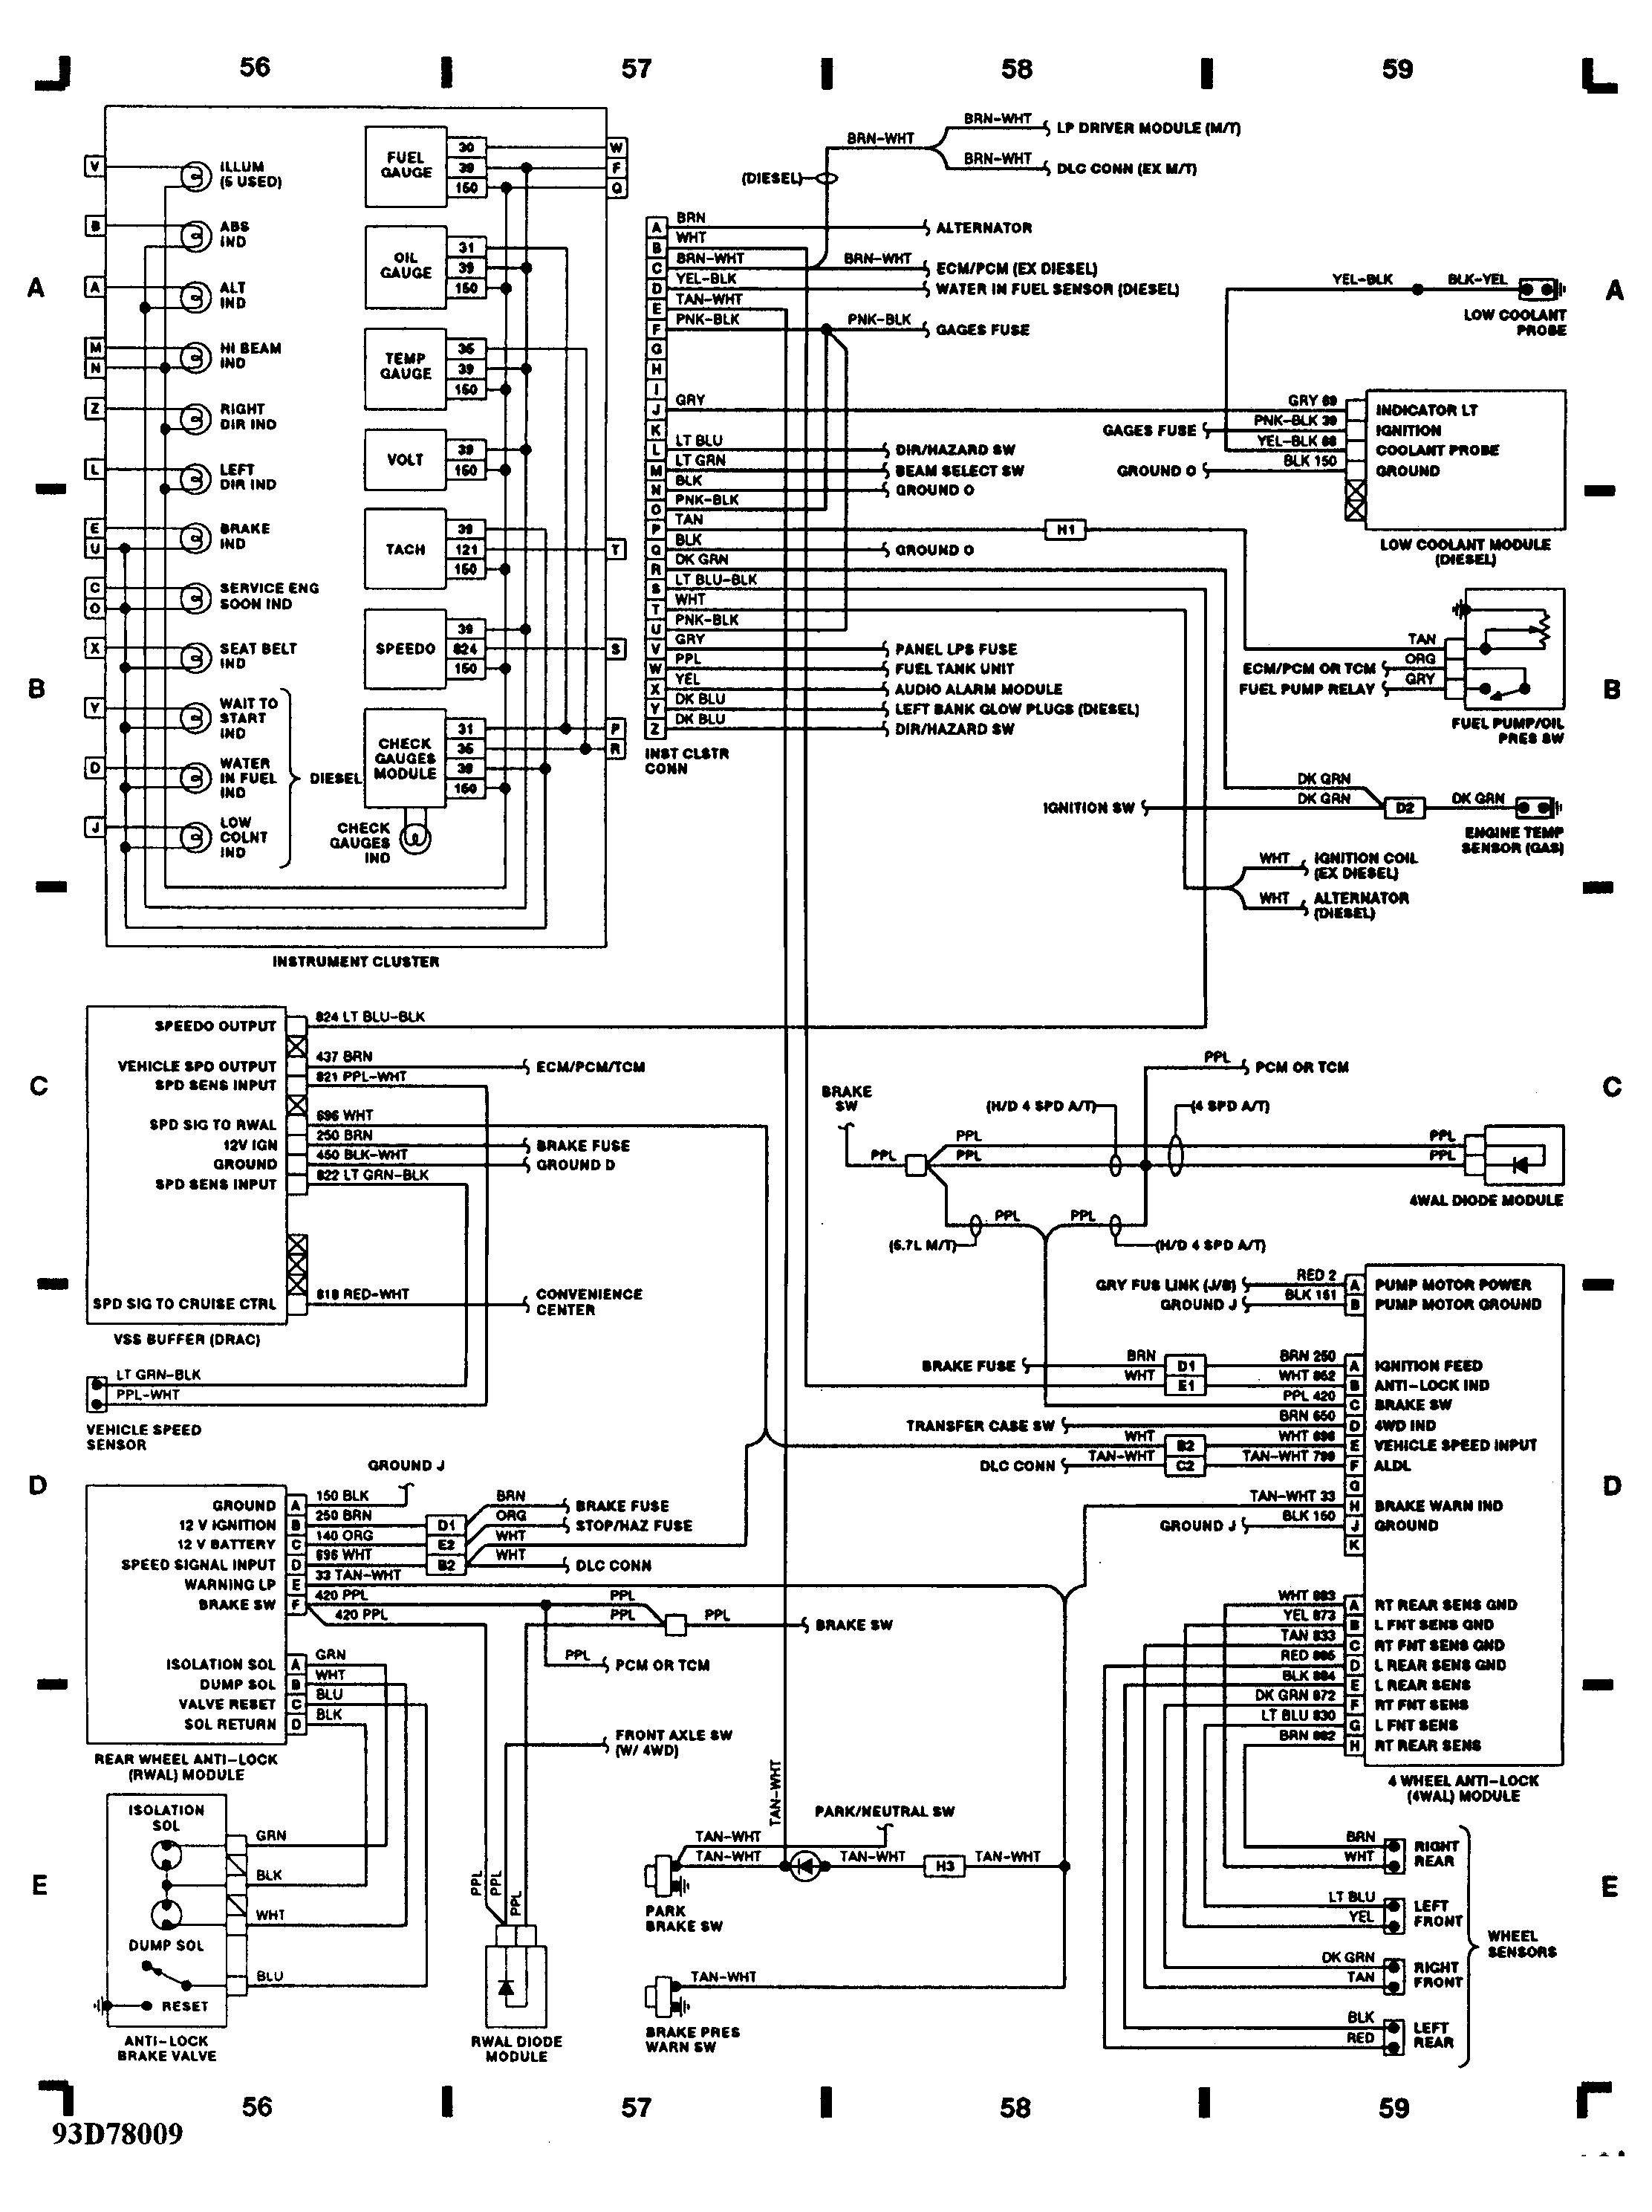 1990 Chevy 1500 Stereo Wiring Diagram